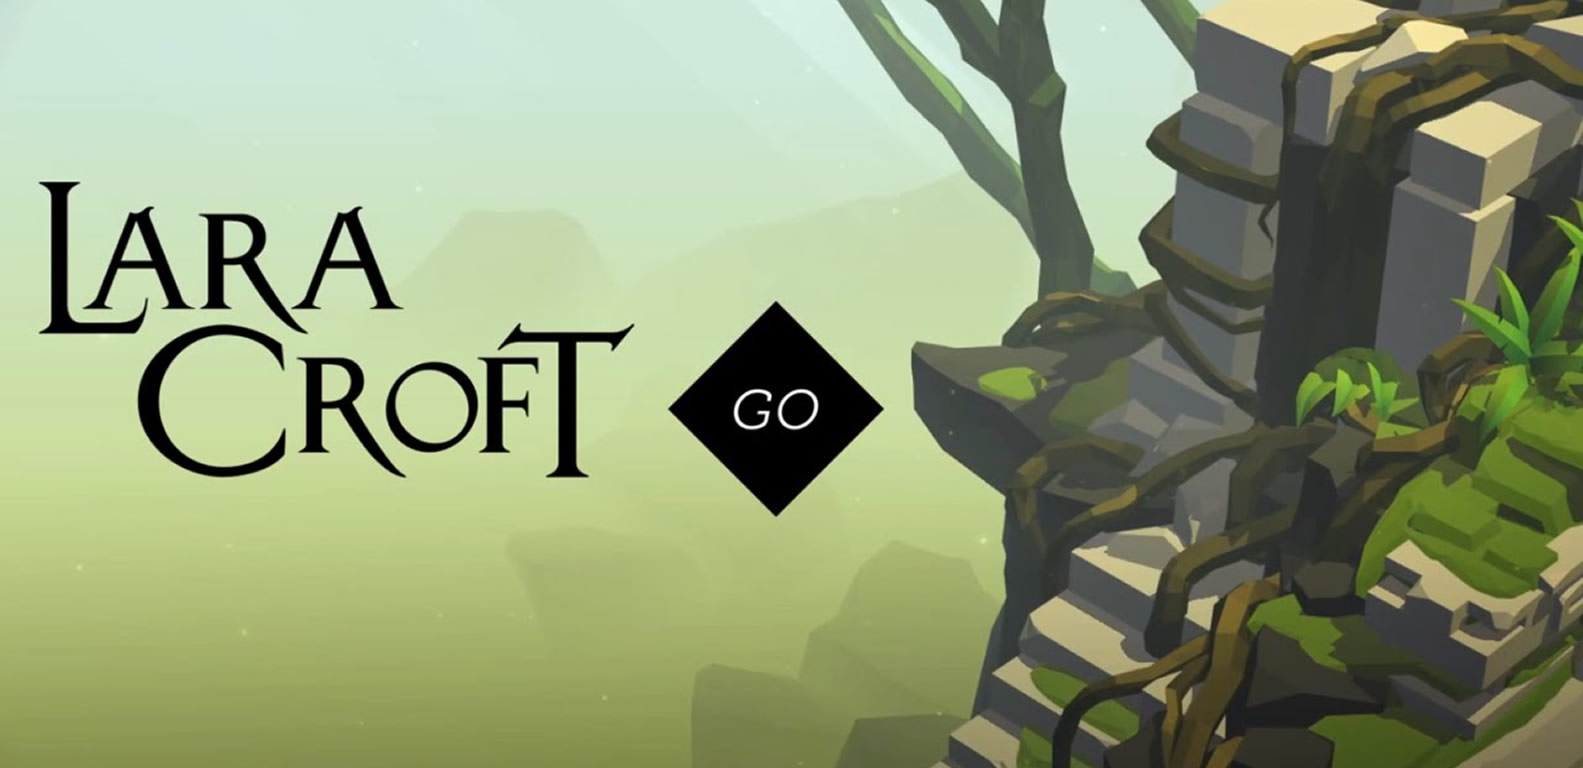 Lara Croft GO Gameplay and Review